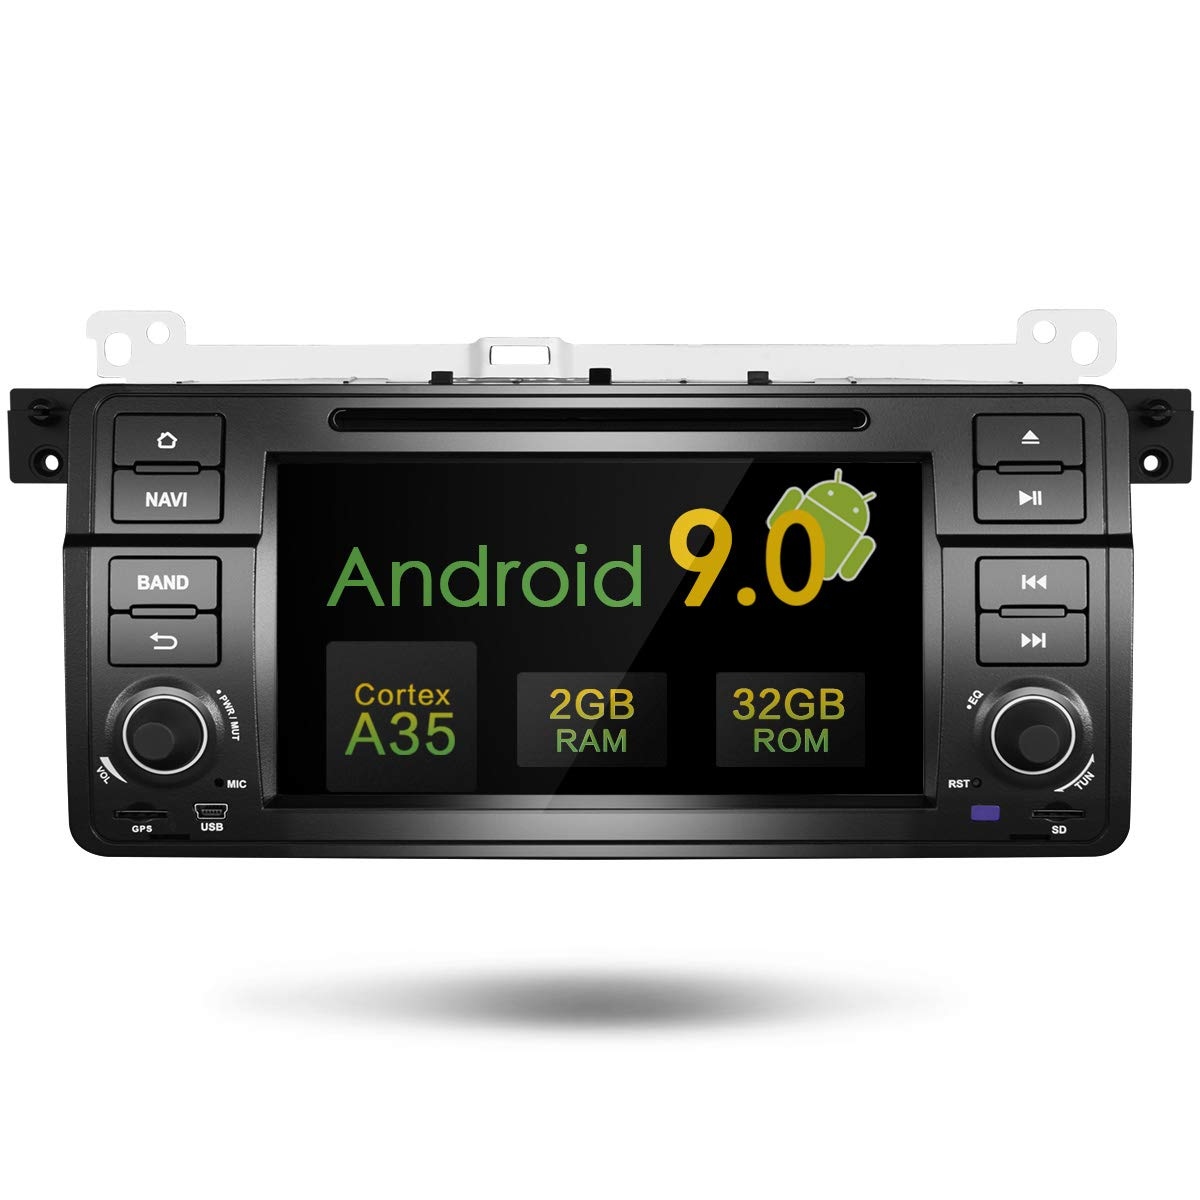 Amaseaudio Upgrade Android 9.0 32GB ROM 7 Inch TFT LCD 2 Din Online Navigating Car Stereo Radio Mirrorlink WiFi GPS for BMW 3 Series E46